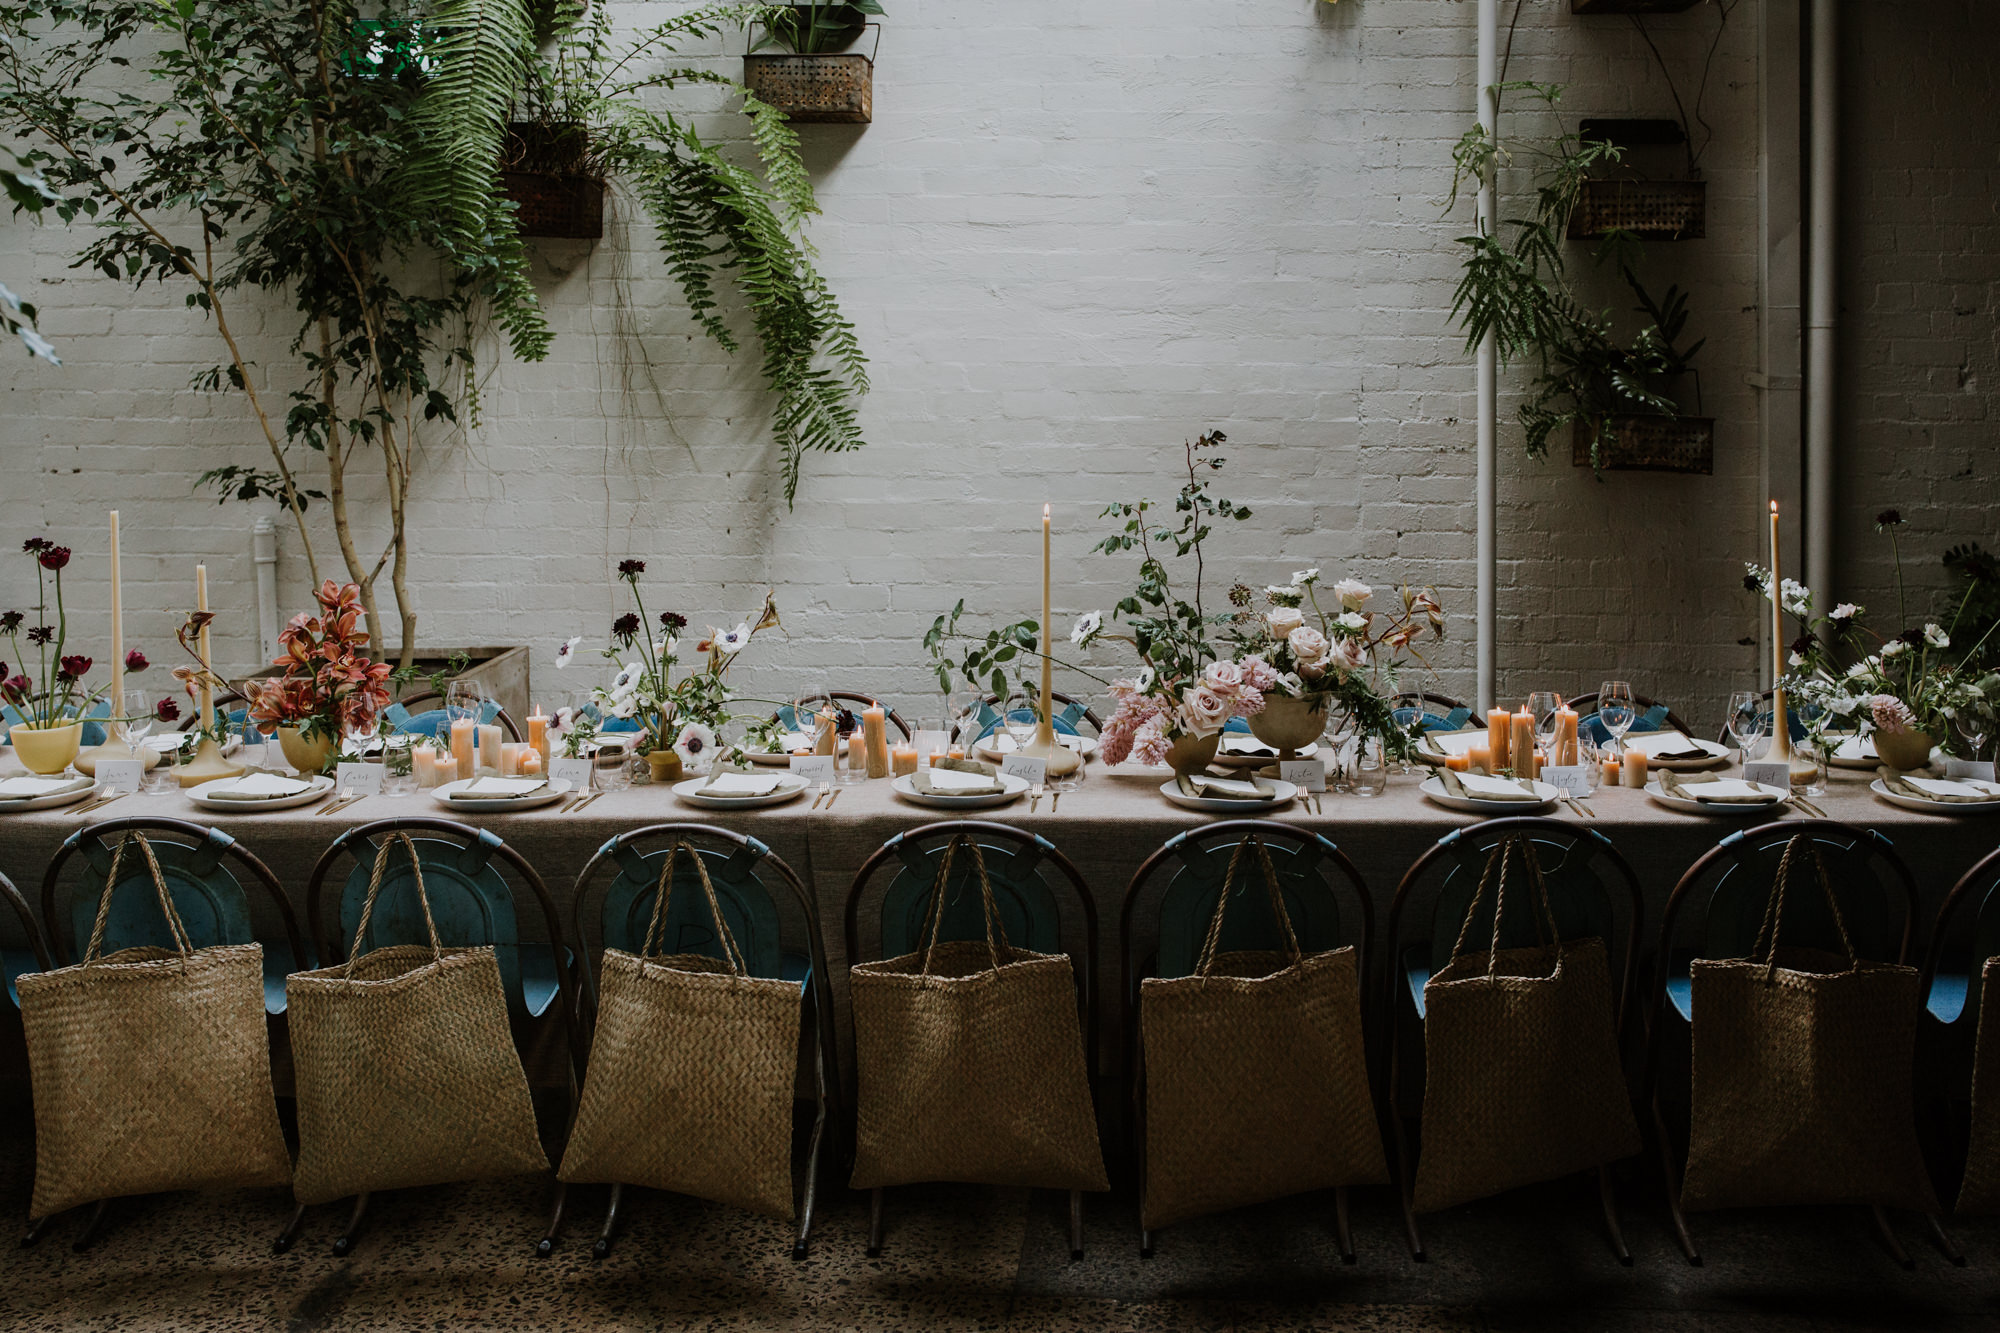 10 of the best wedding venues in Melbourne - Rupert on Rupert - Mr Theodore